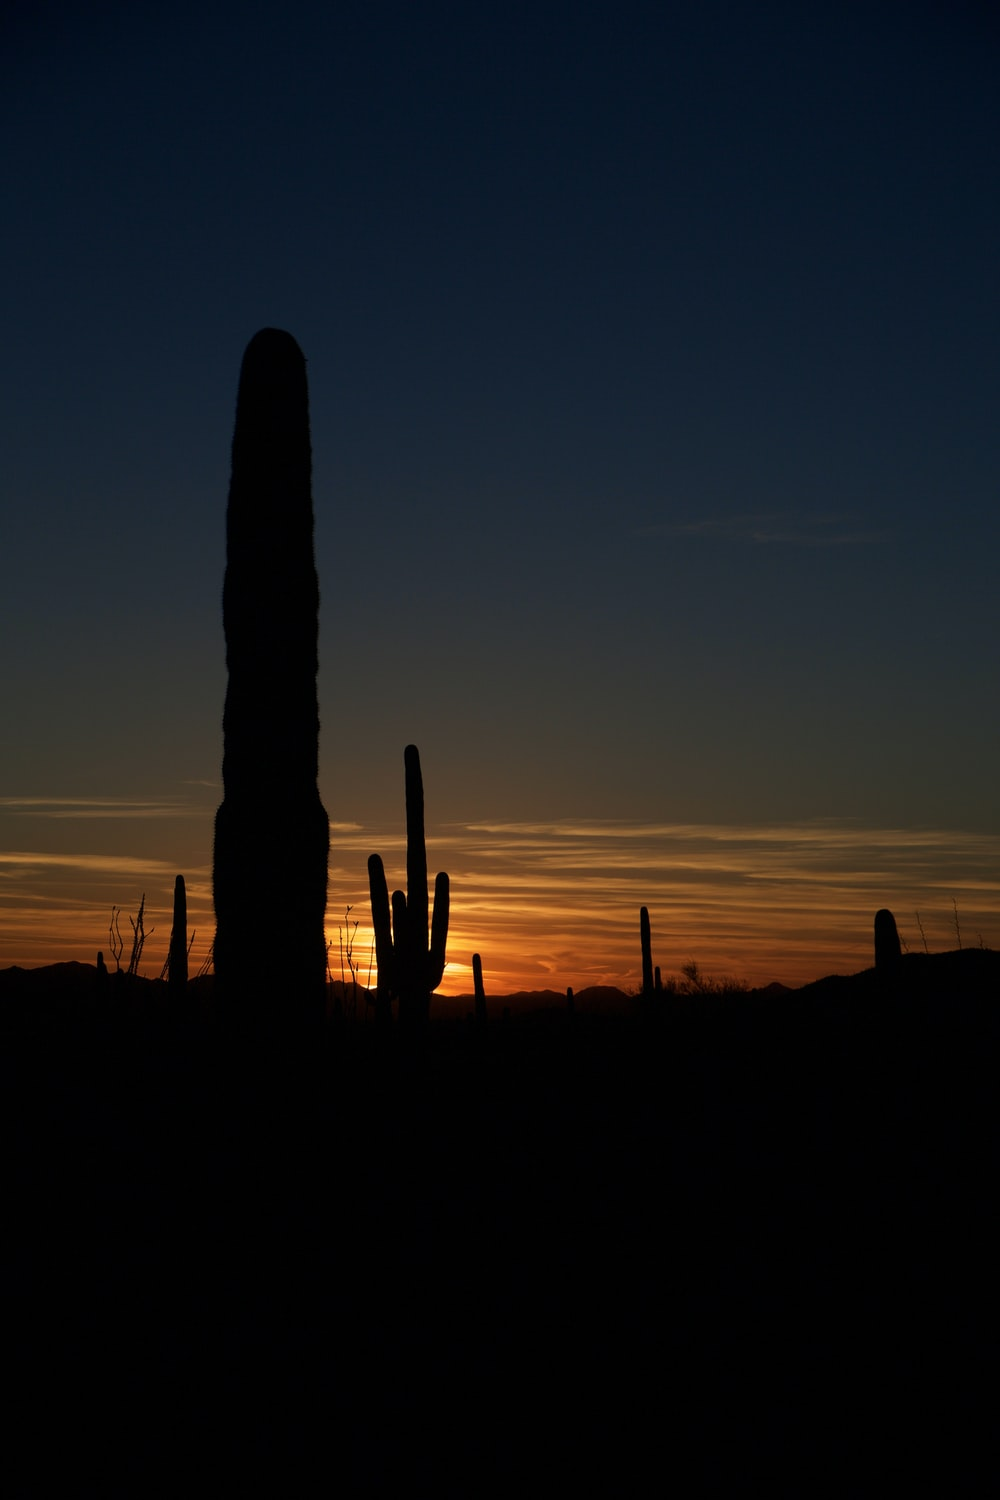 silhouette of cactus under clear blue sky during sunset